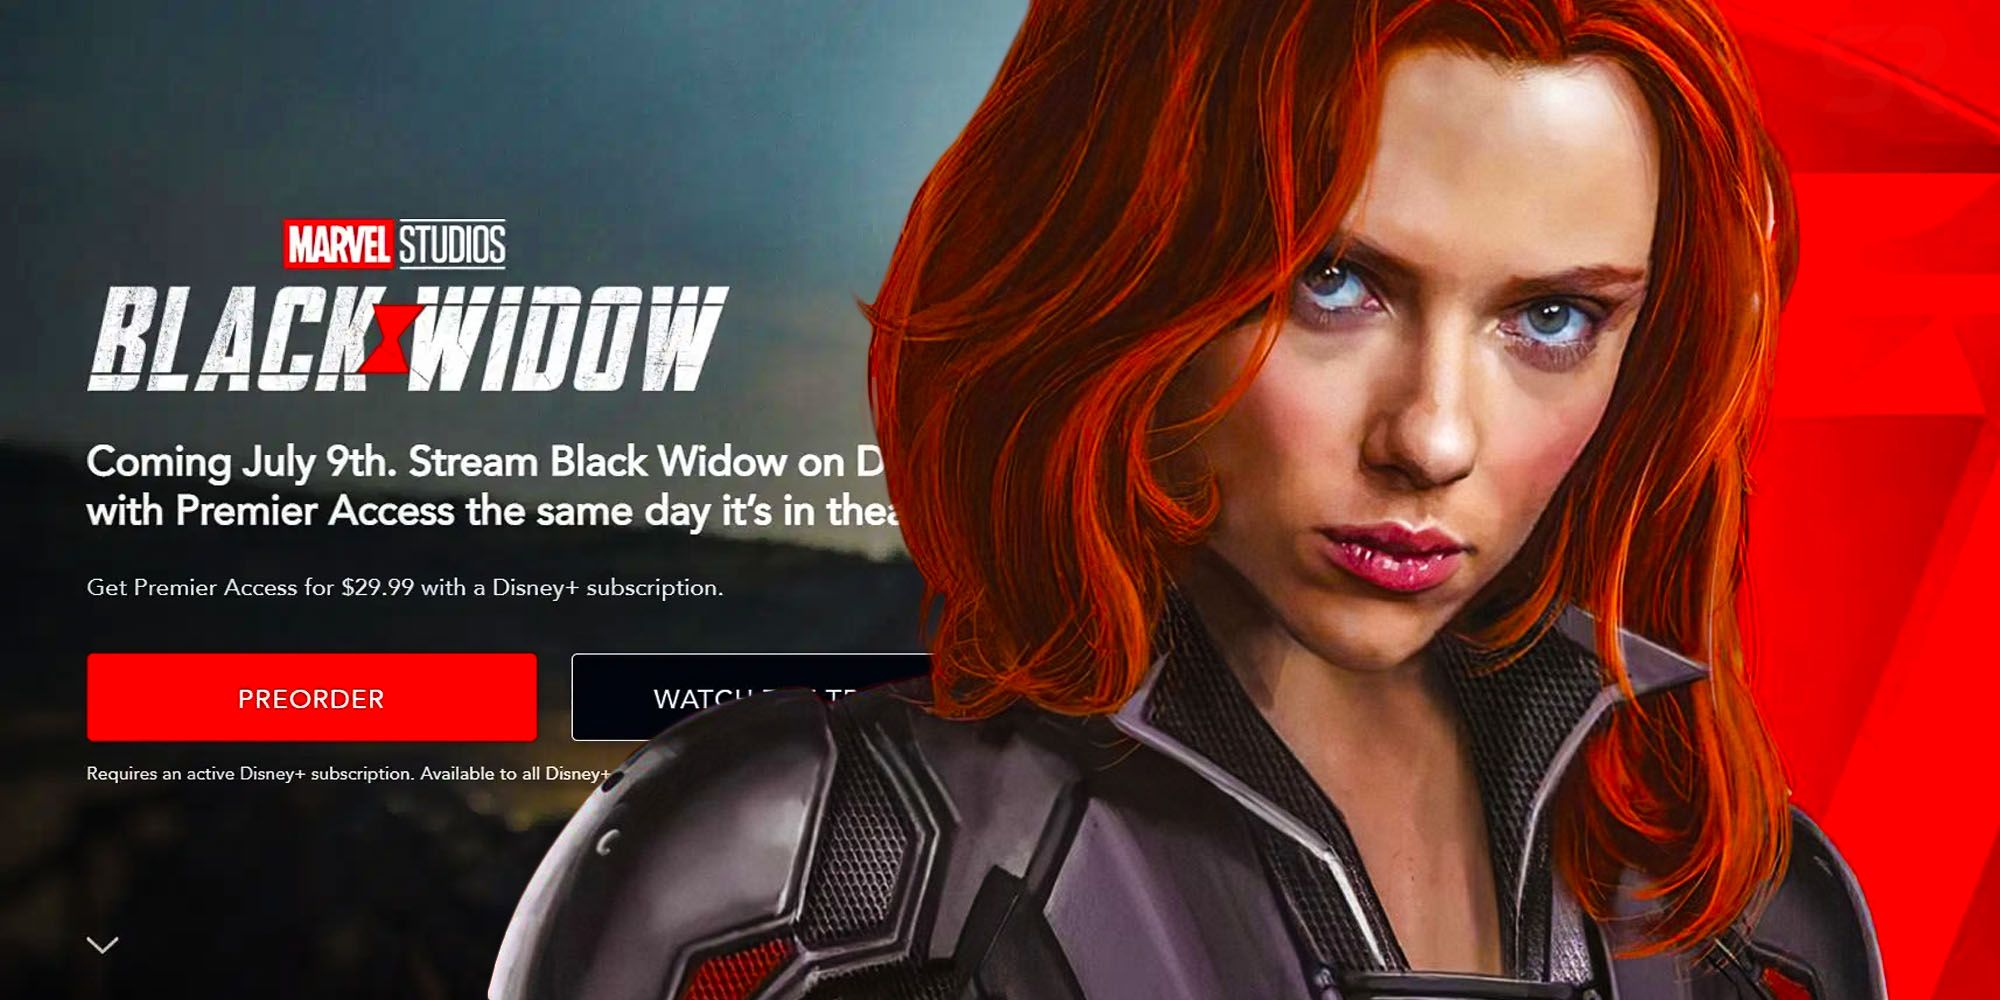 Black Widow Proves Box Office and Streaming Can Coexist (If They Adapt)